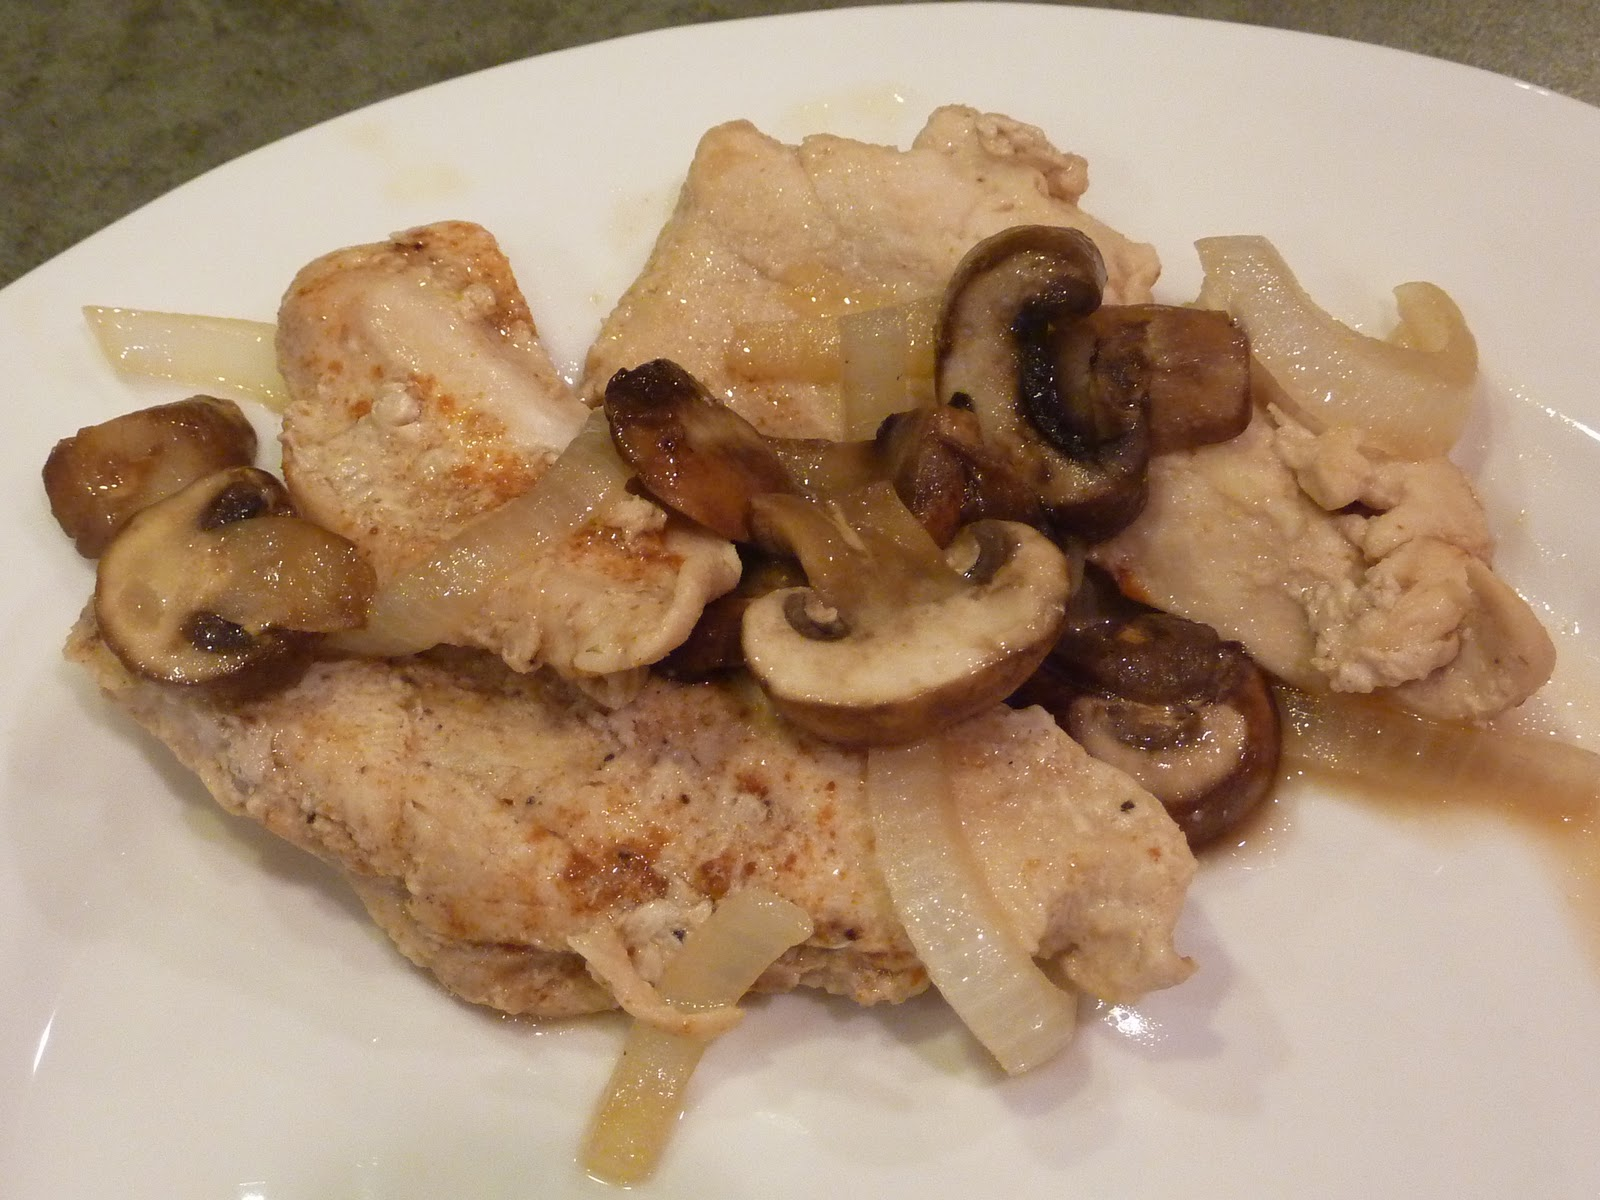 LIFE IS GOOD: PAPRIKA CHICKEN WITH MUSHROOMS AND ONIONS